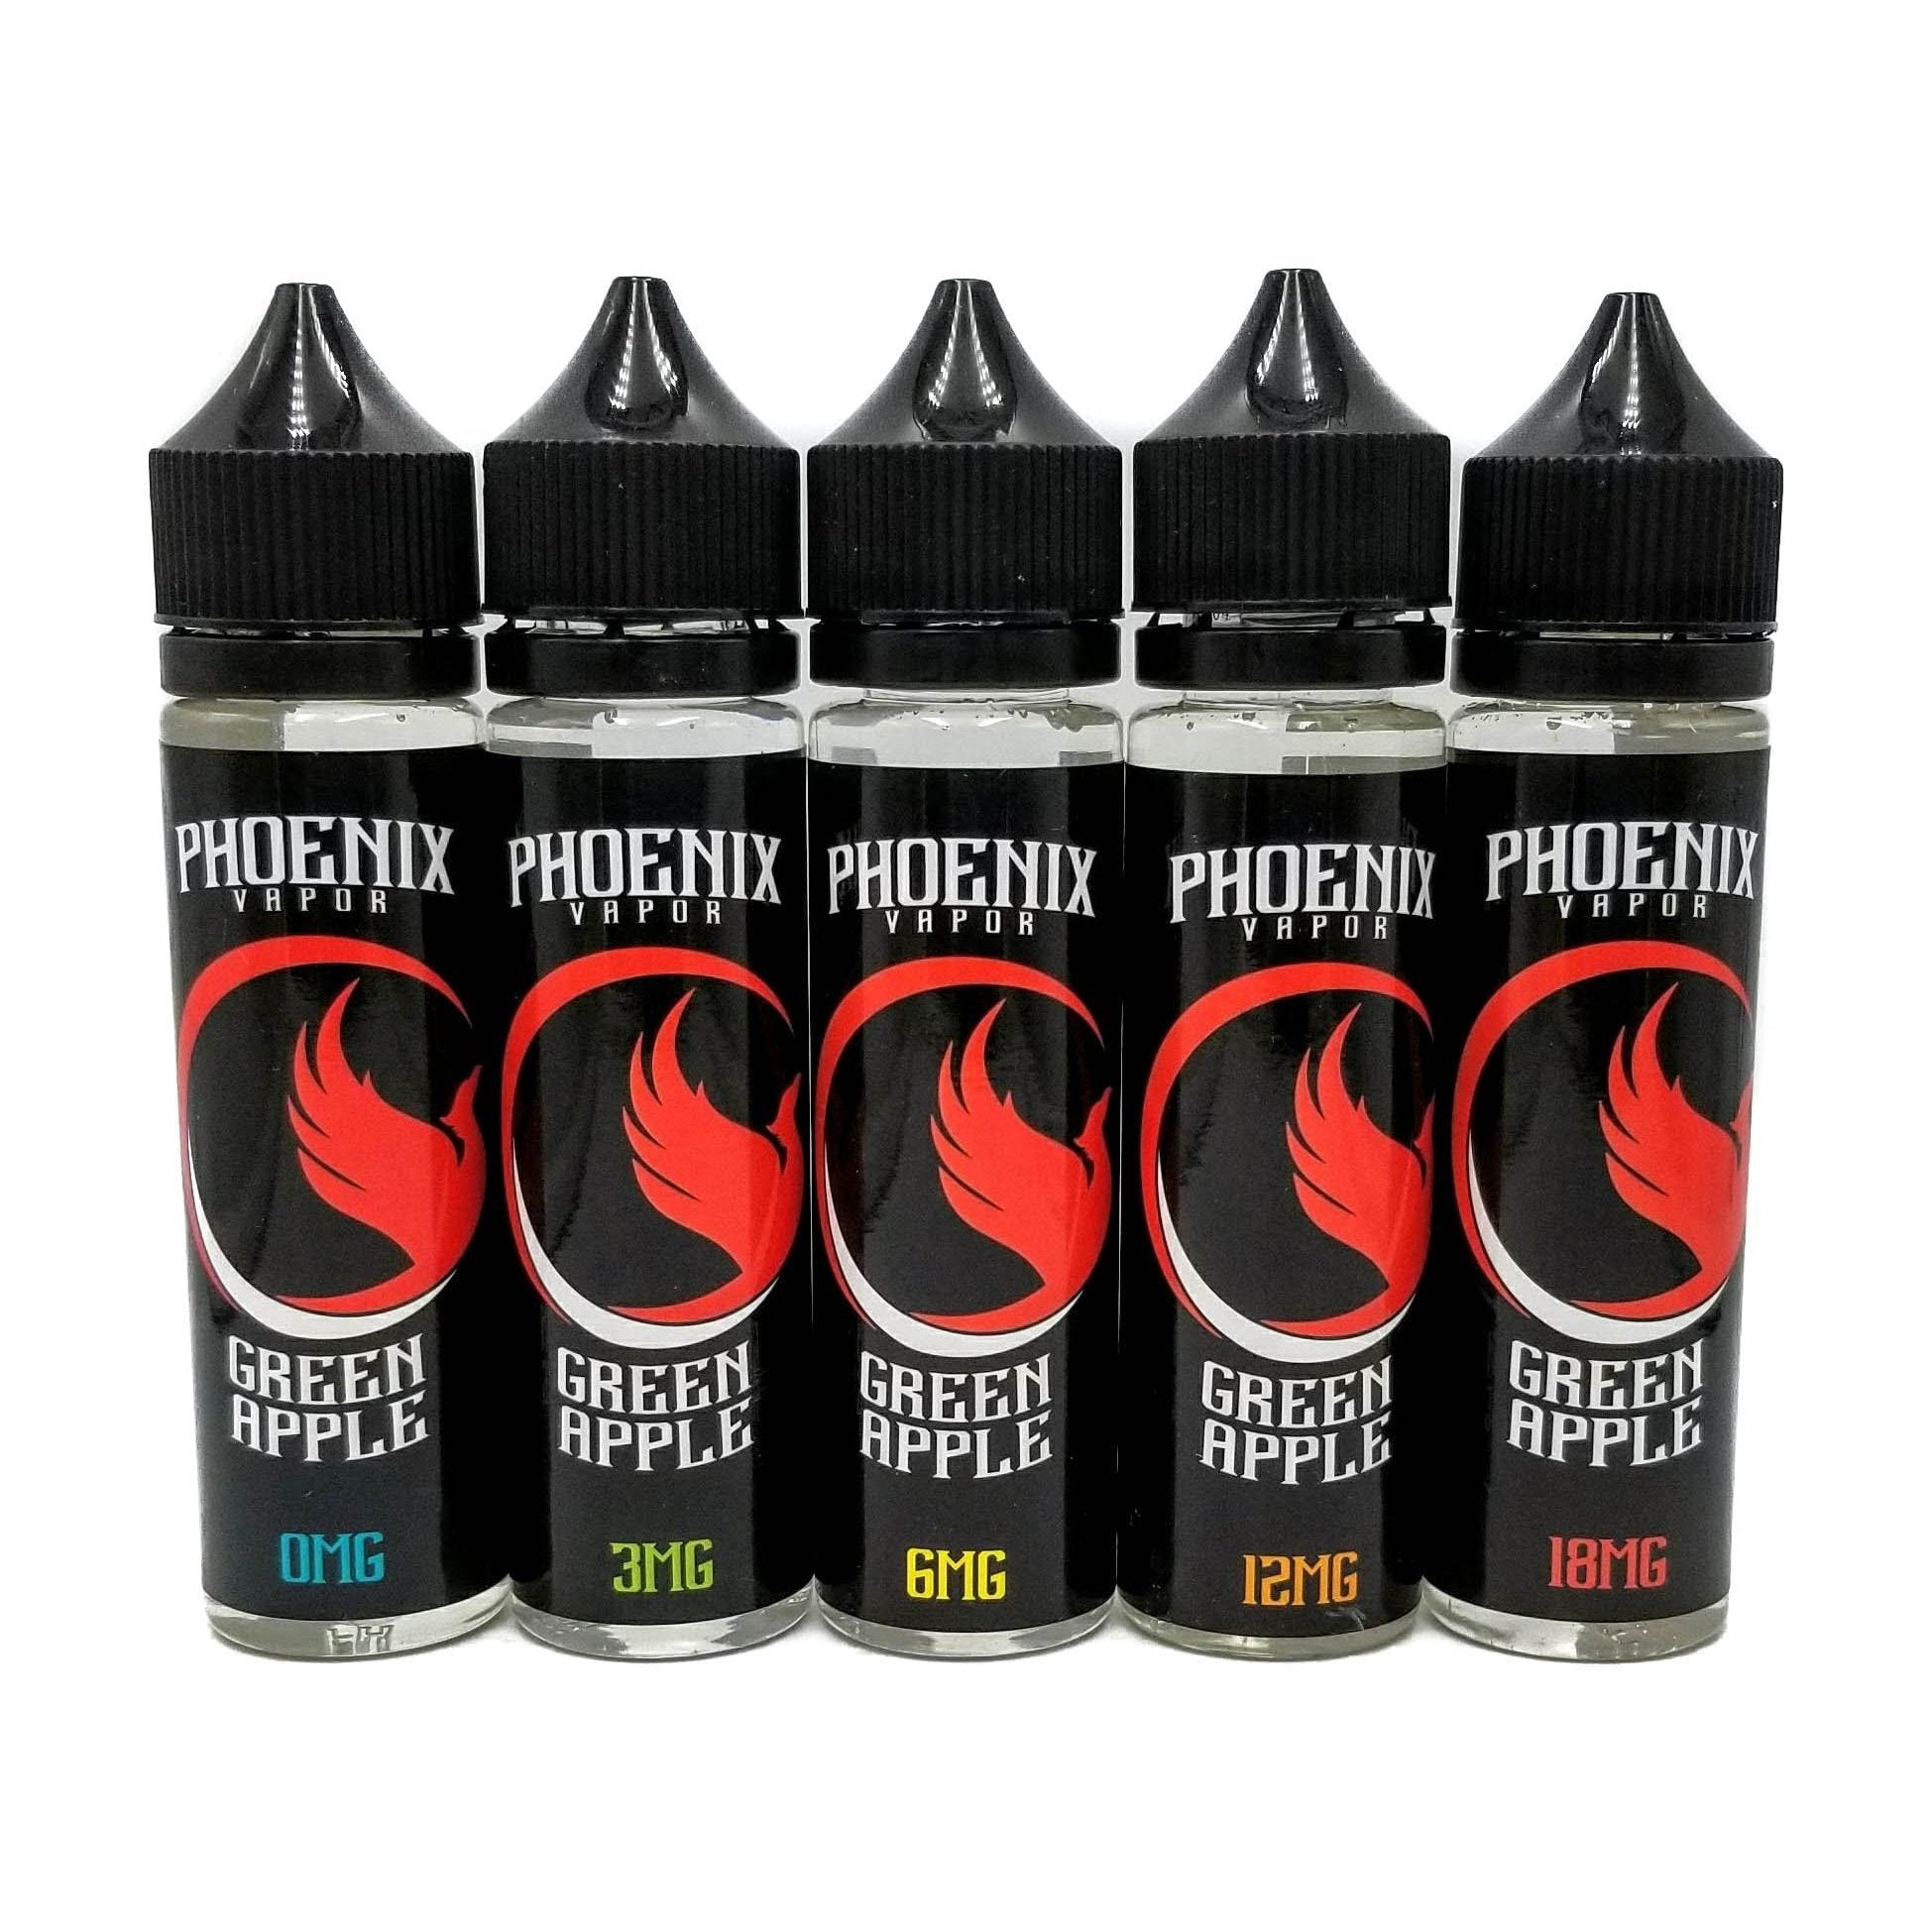 Phoenix Vapor E-Liquid E-Liquid 60 ml / 0 mg Green Apple by Phoenix Vapor